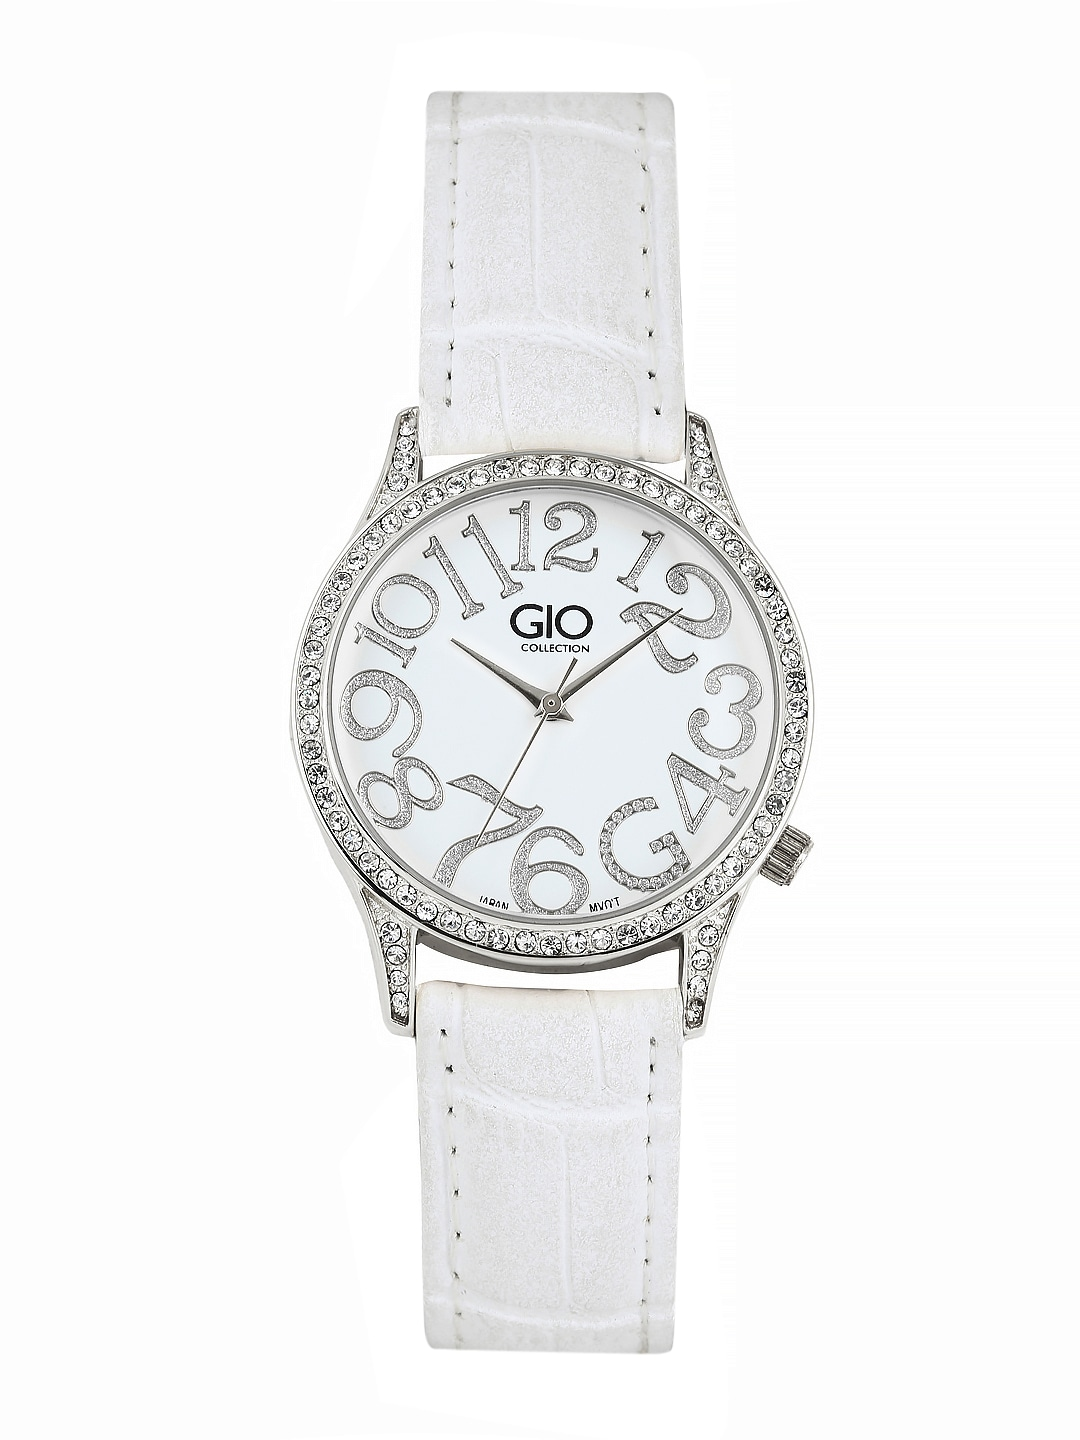 GIO COLLECTION Women White Dial Watch G0030-01